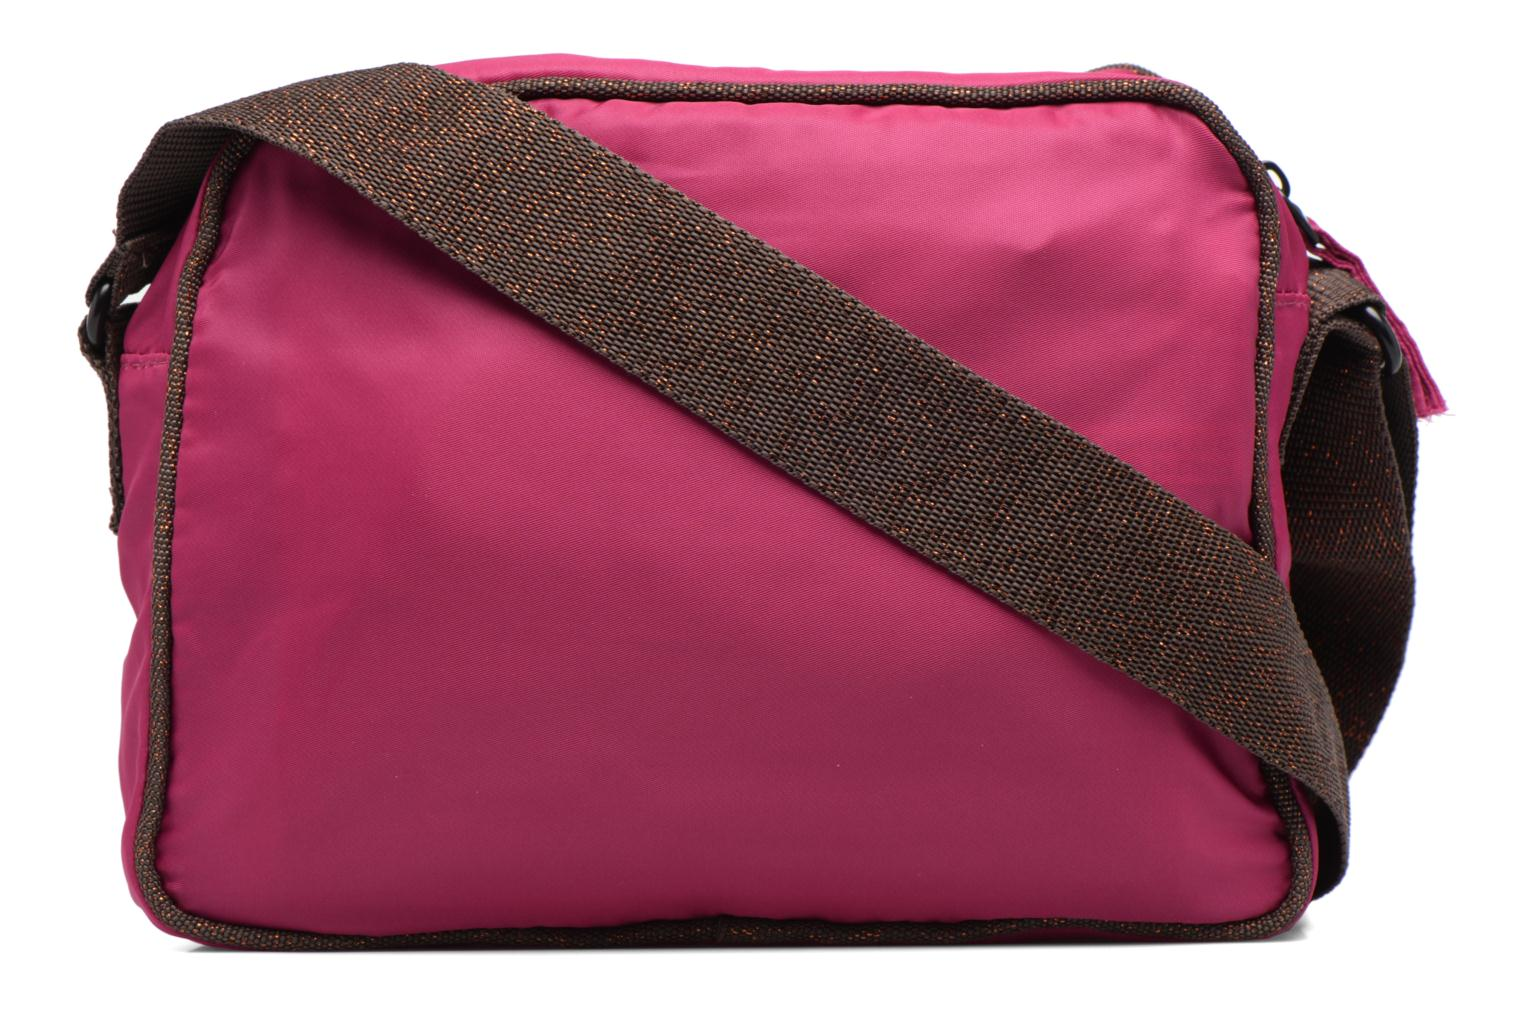 Handbags Bensimon Small Besace Pink front view